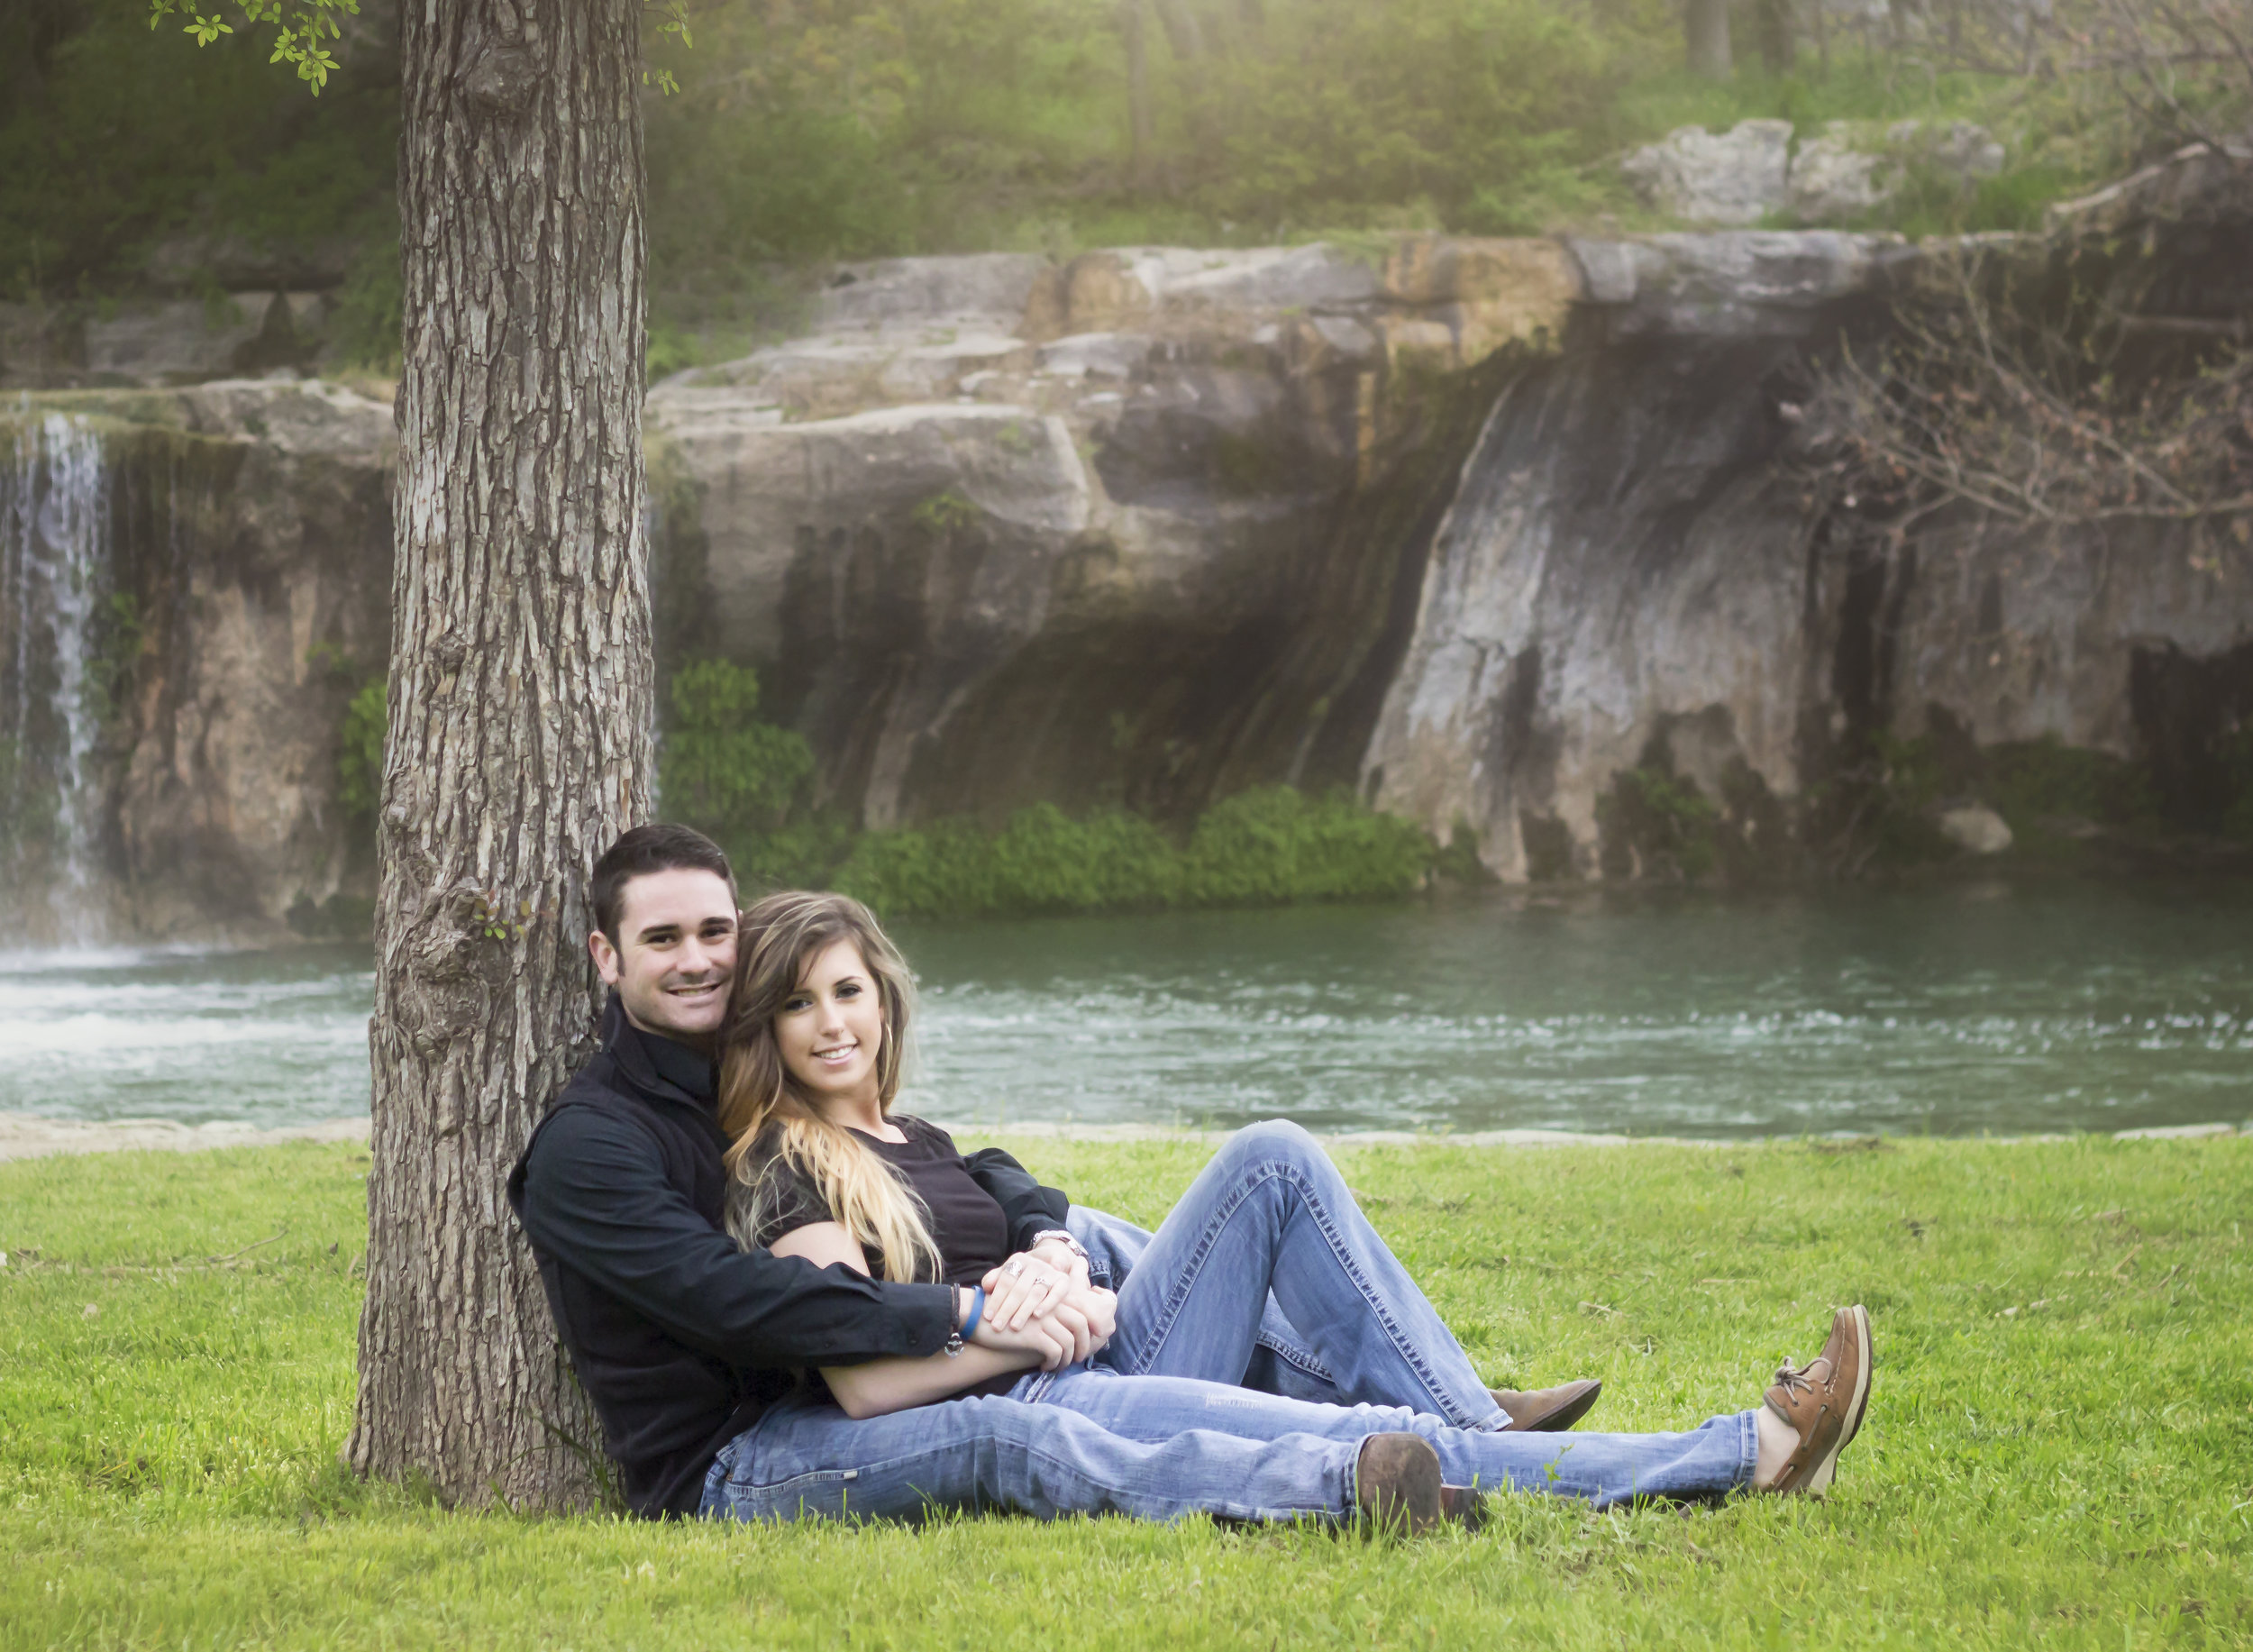 tonkawa_falls_smith_family_photography